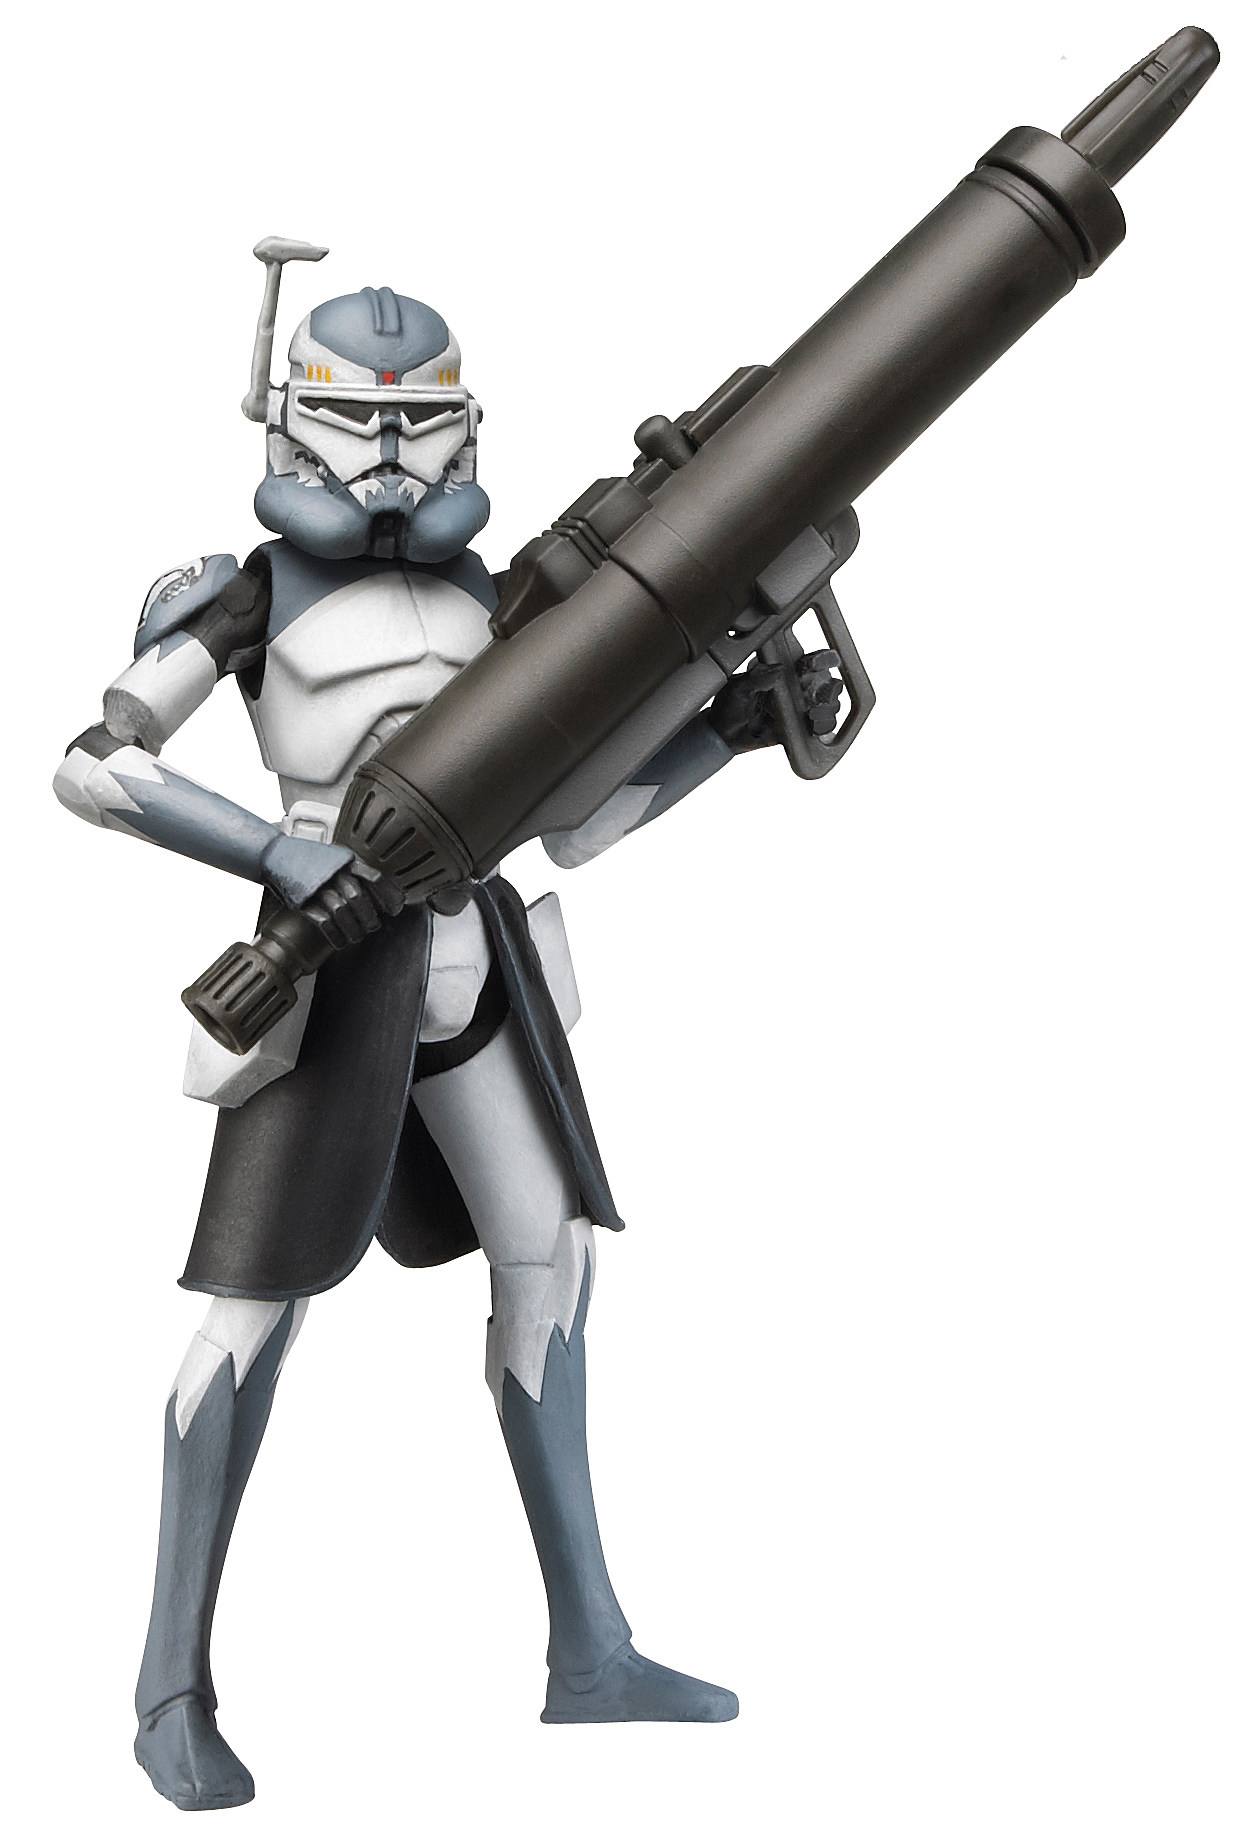 Star Wars The Clone Wars Toys : Hasbro unveils upcoming 'star wars action figures toy